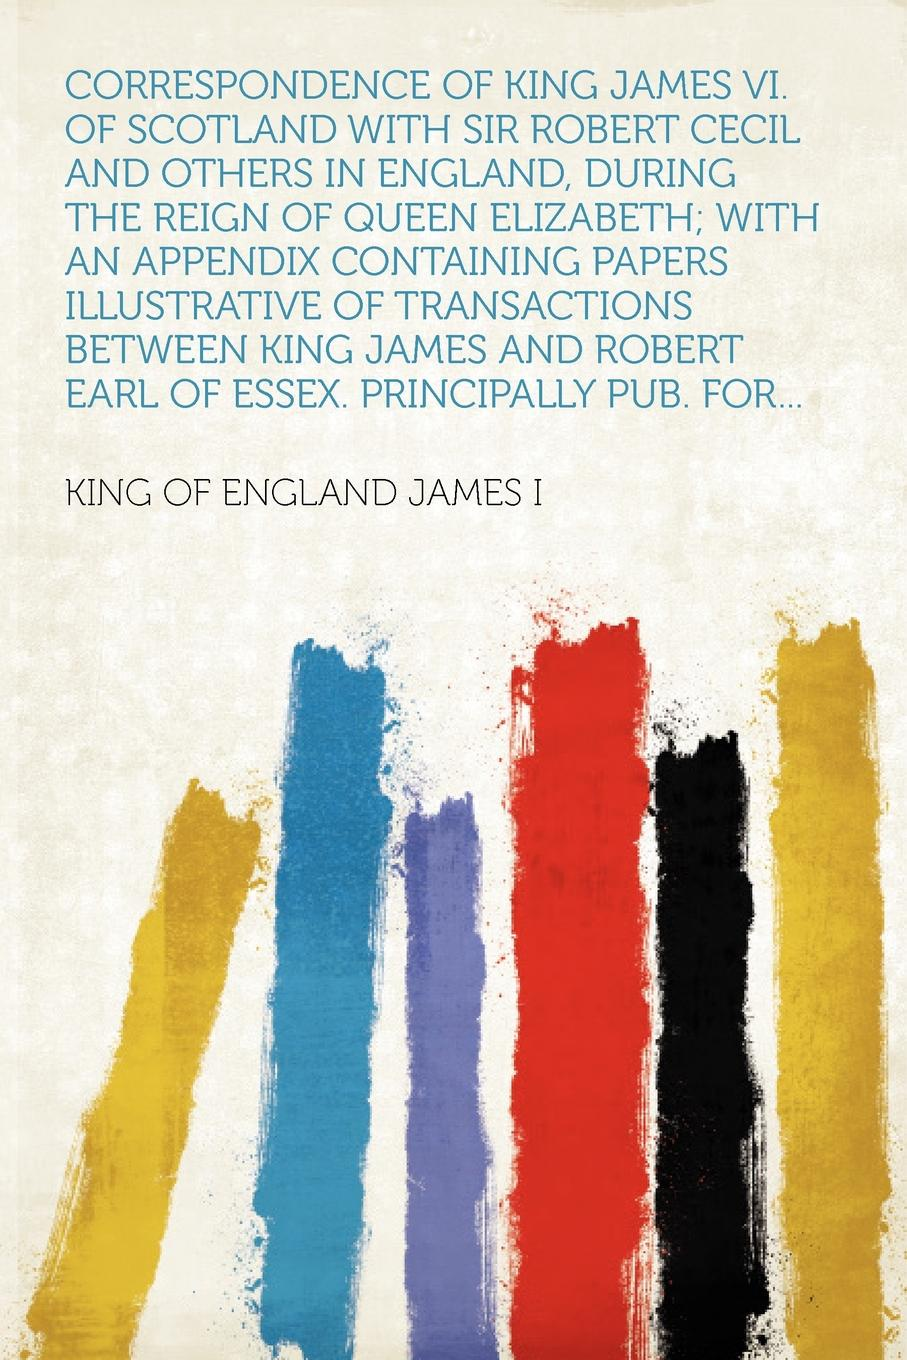 King of England James I Correspondence of King James VI. of Scotland With Sir Robert Cecil and Others in England, During the Reign of Queen Elizabeth; With an Appendix Containing Papers Illustrative of Transactions Between King James and Robert Earl of Essex. Principally... стоимость